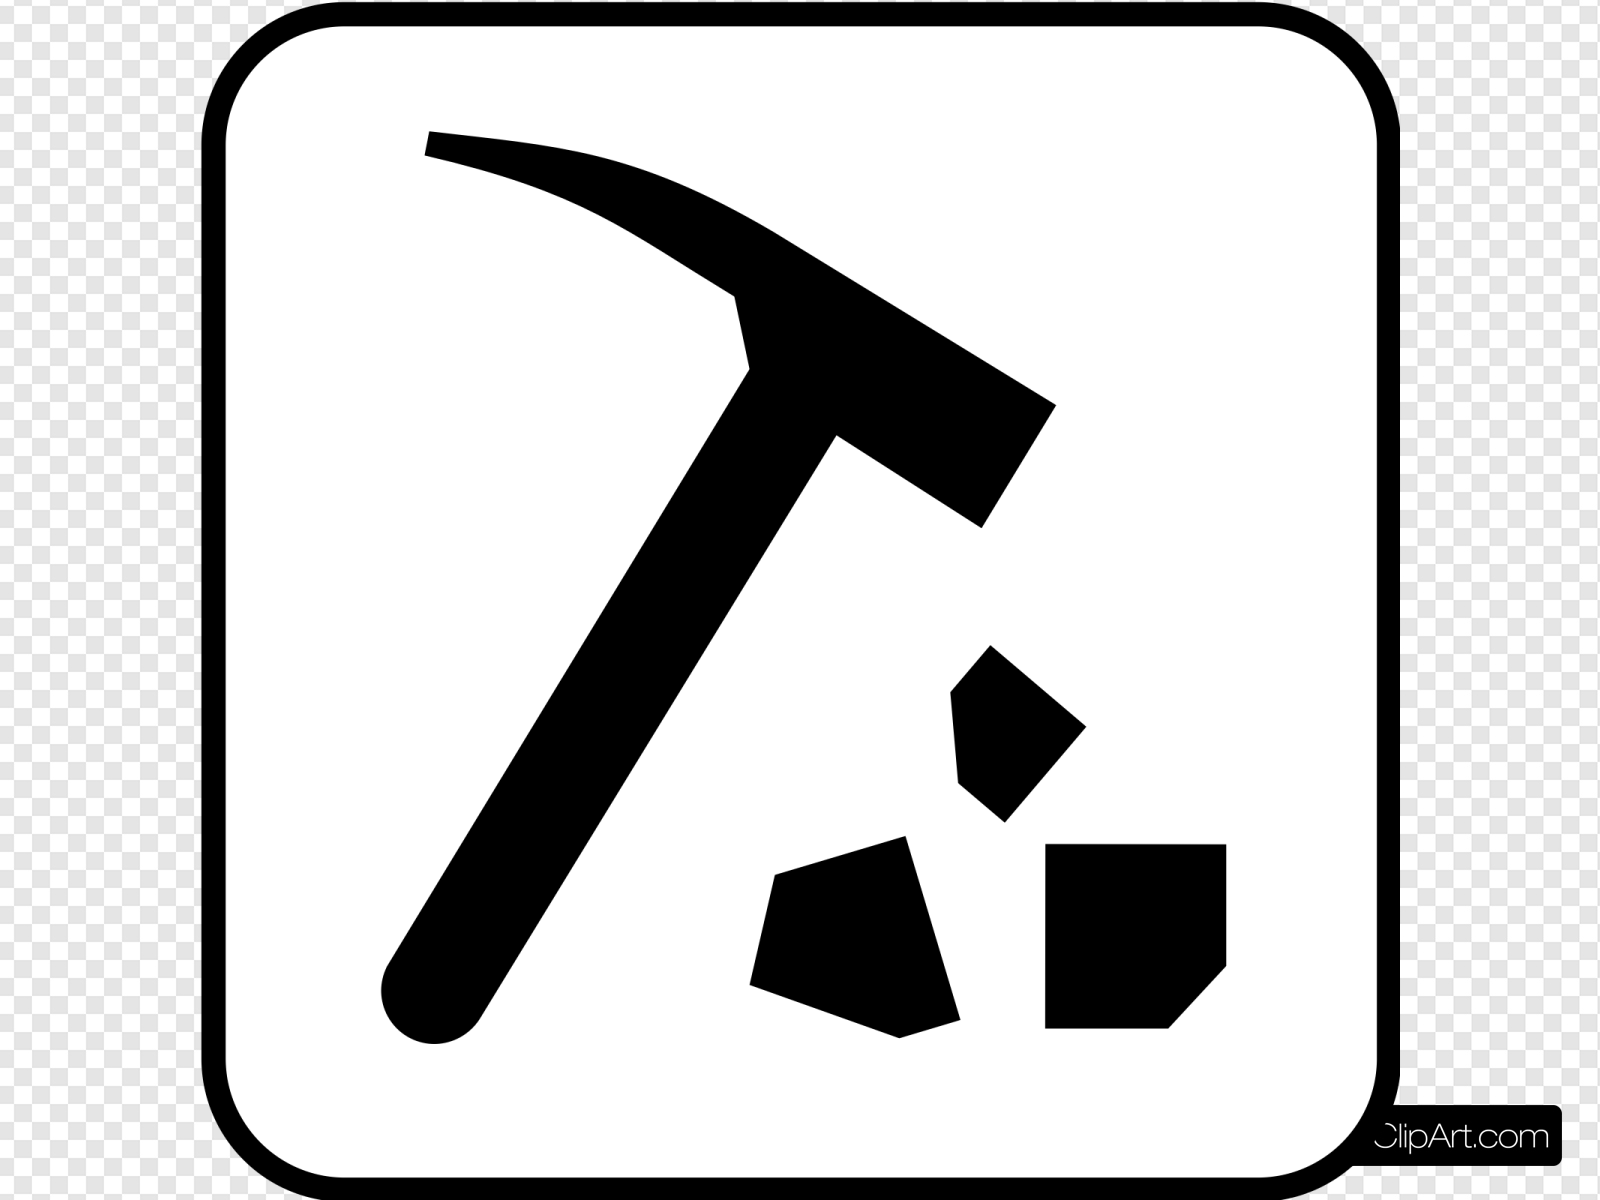 Mining Or Rock Breaking Clip art, Icon and SVG.